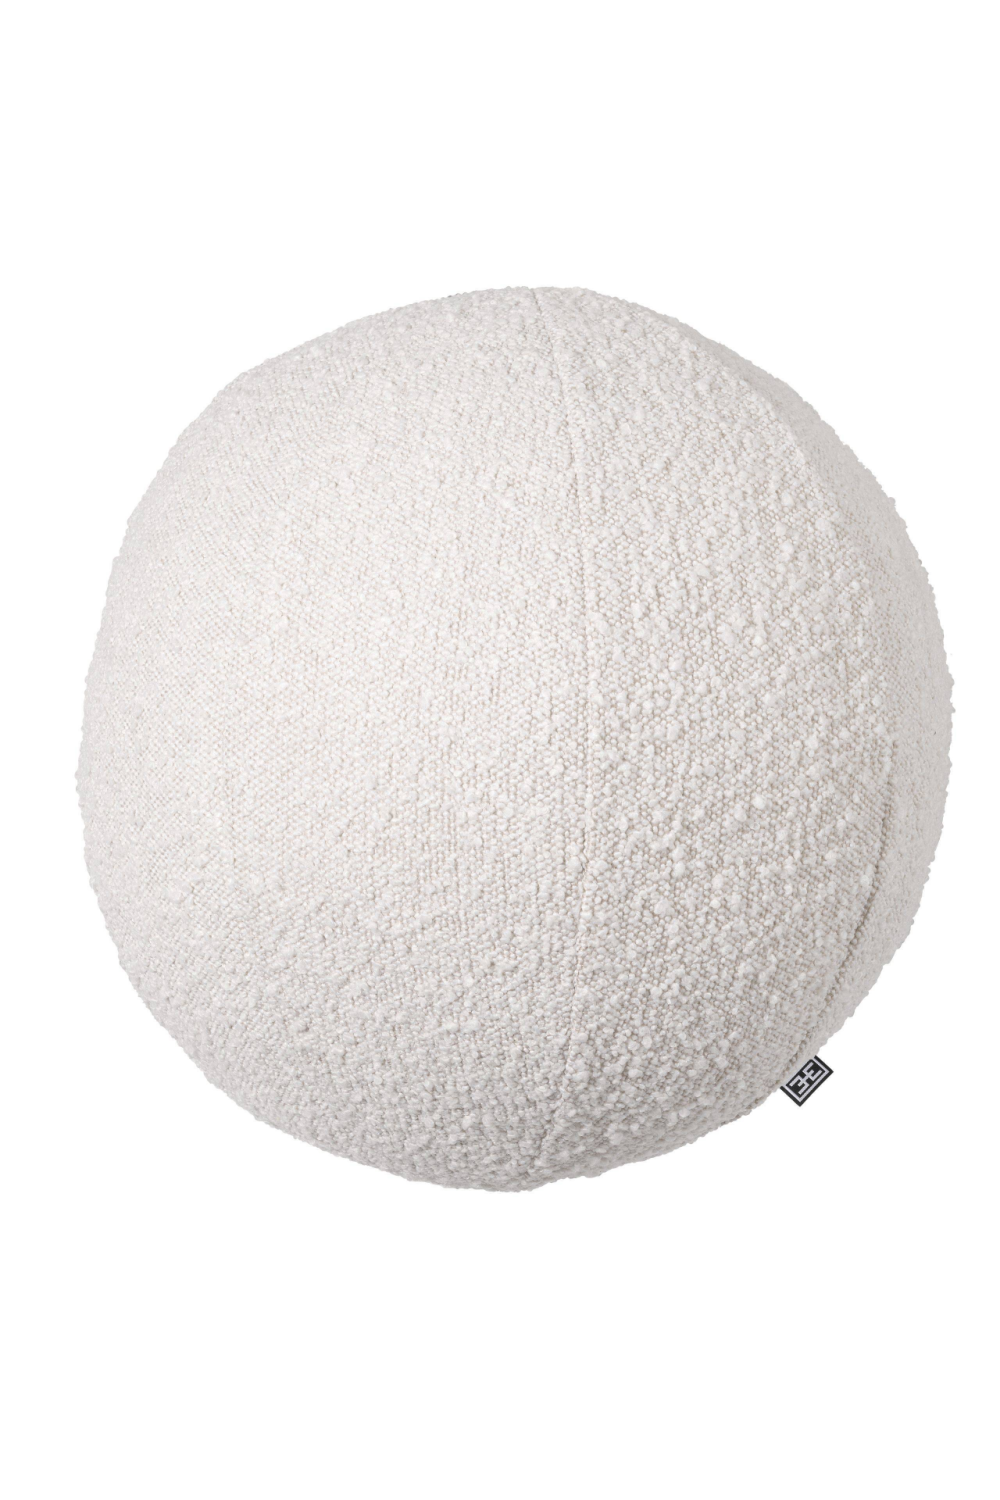 Boucle Cream Ball Shaped Pillow - Eichholtz Palla L